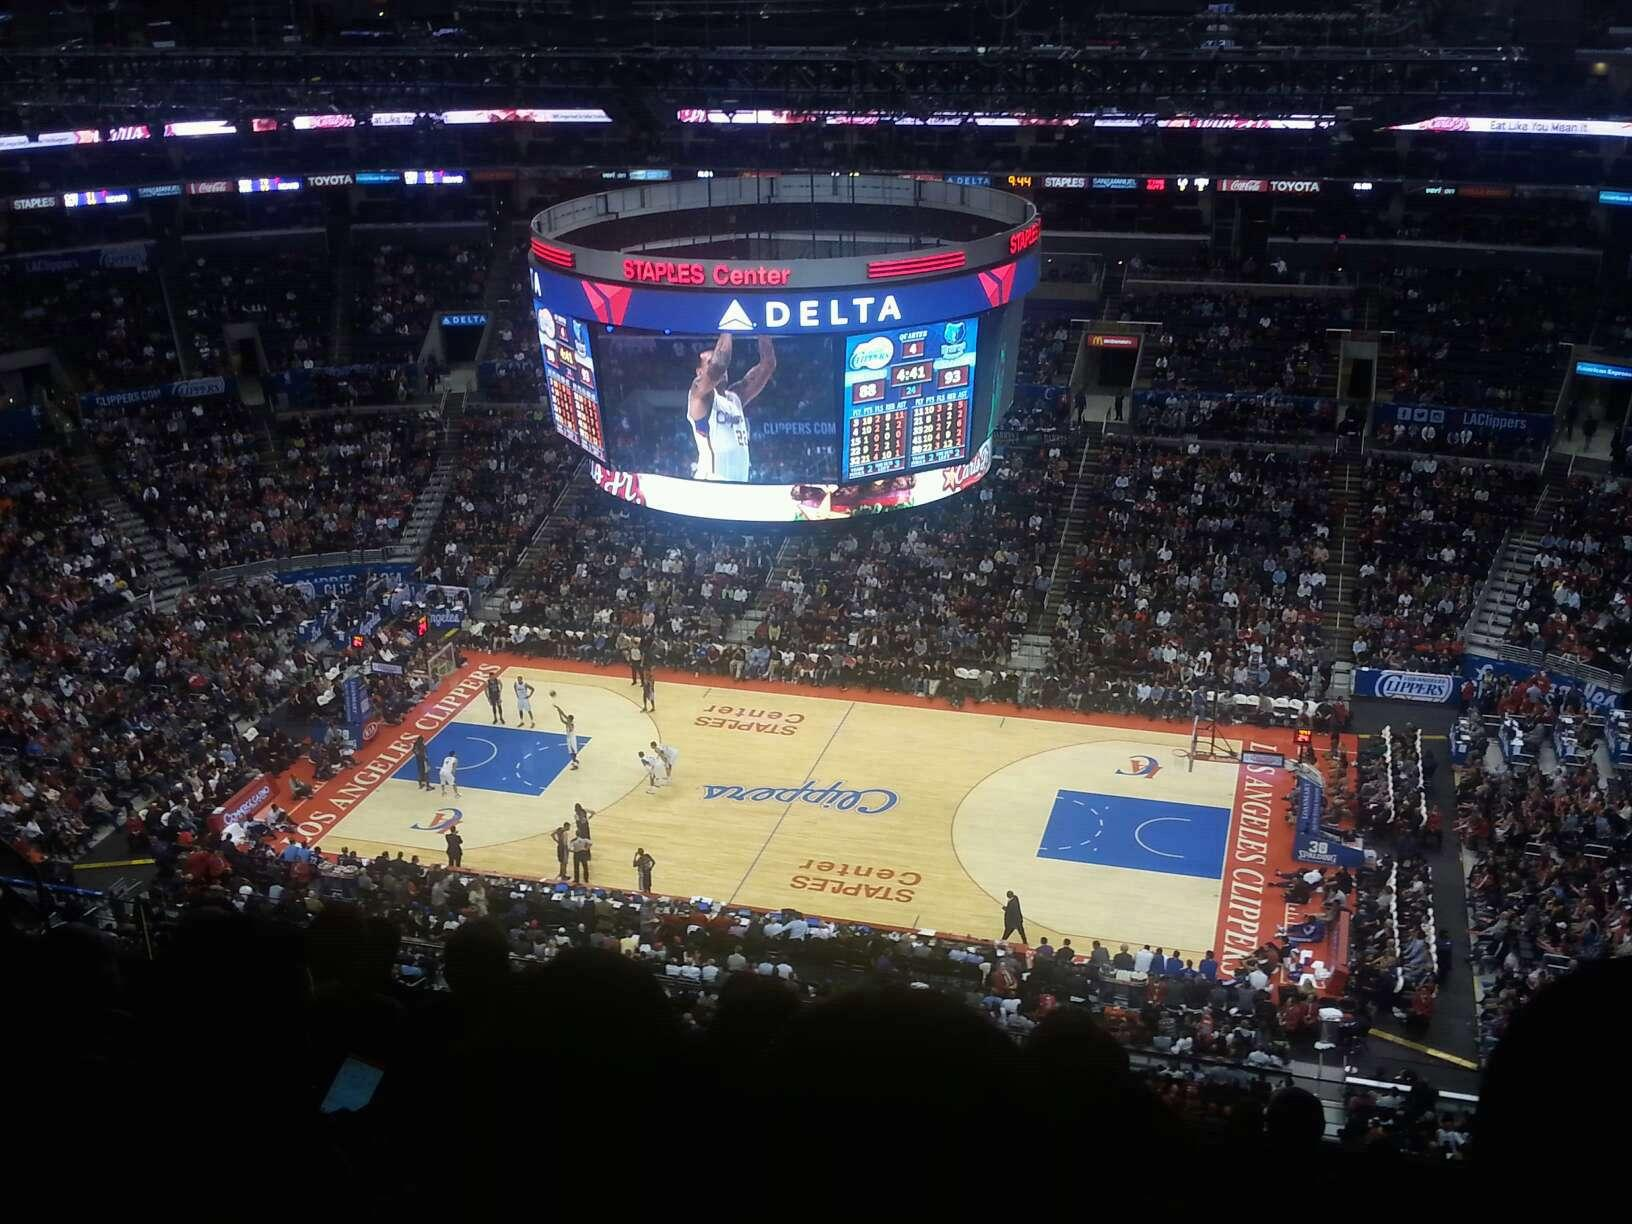 Staples Center Section 334 - Clippers/Lakers ...